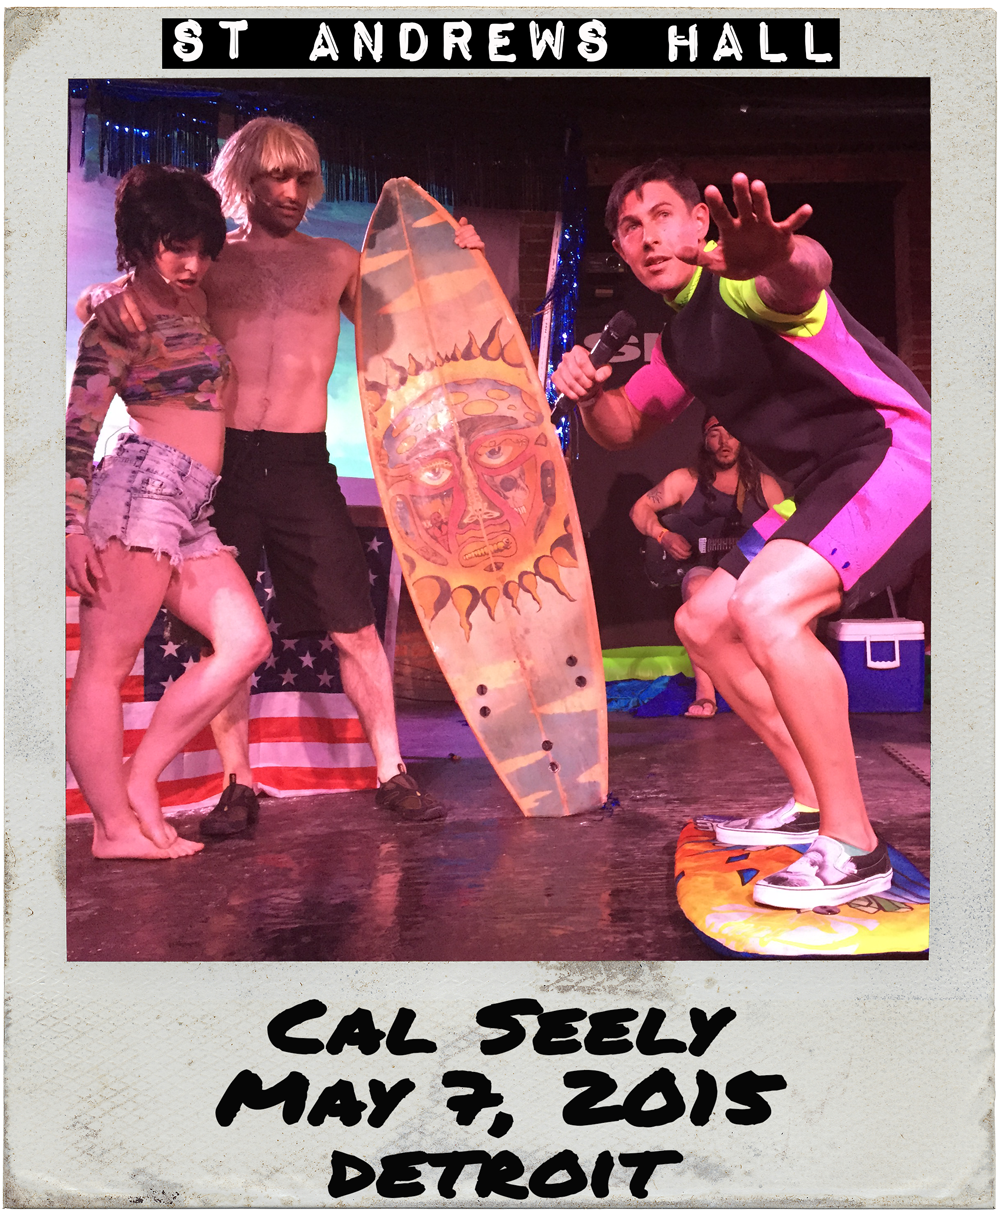 05_07_15_Cal-Seely_Detroit.png